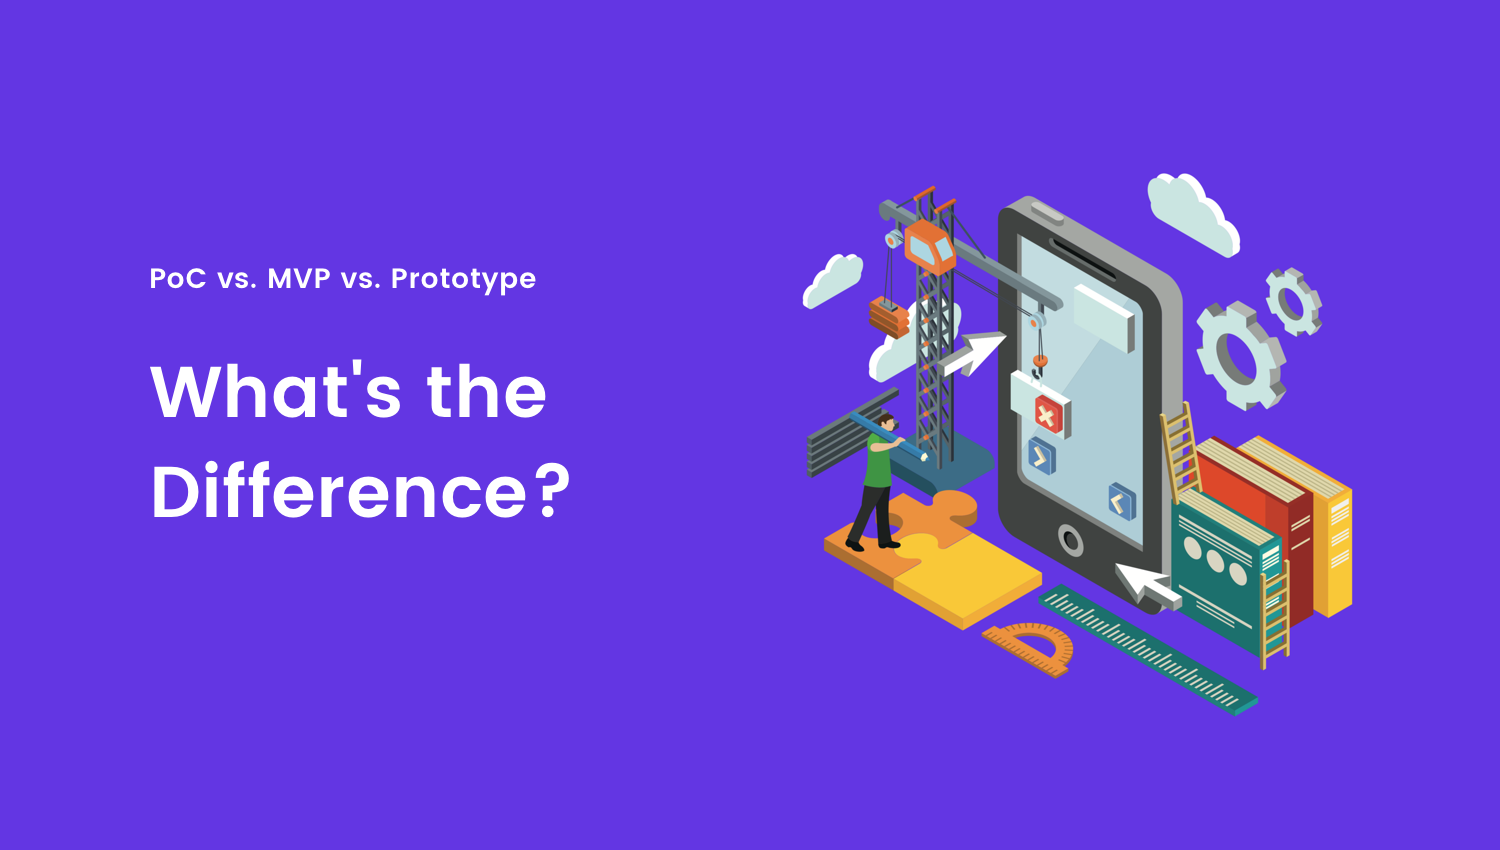 poc vs prototype vs mvp what s the difference checkmate